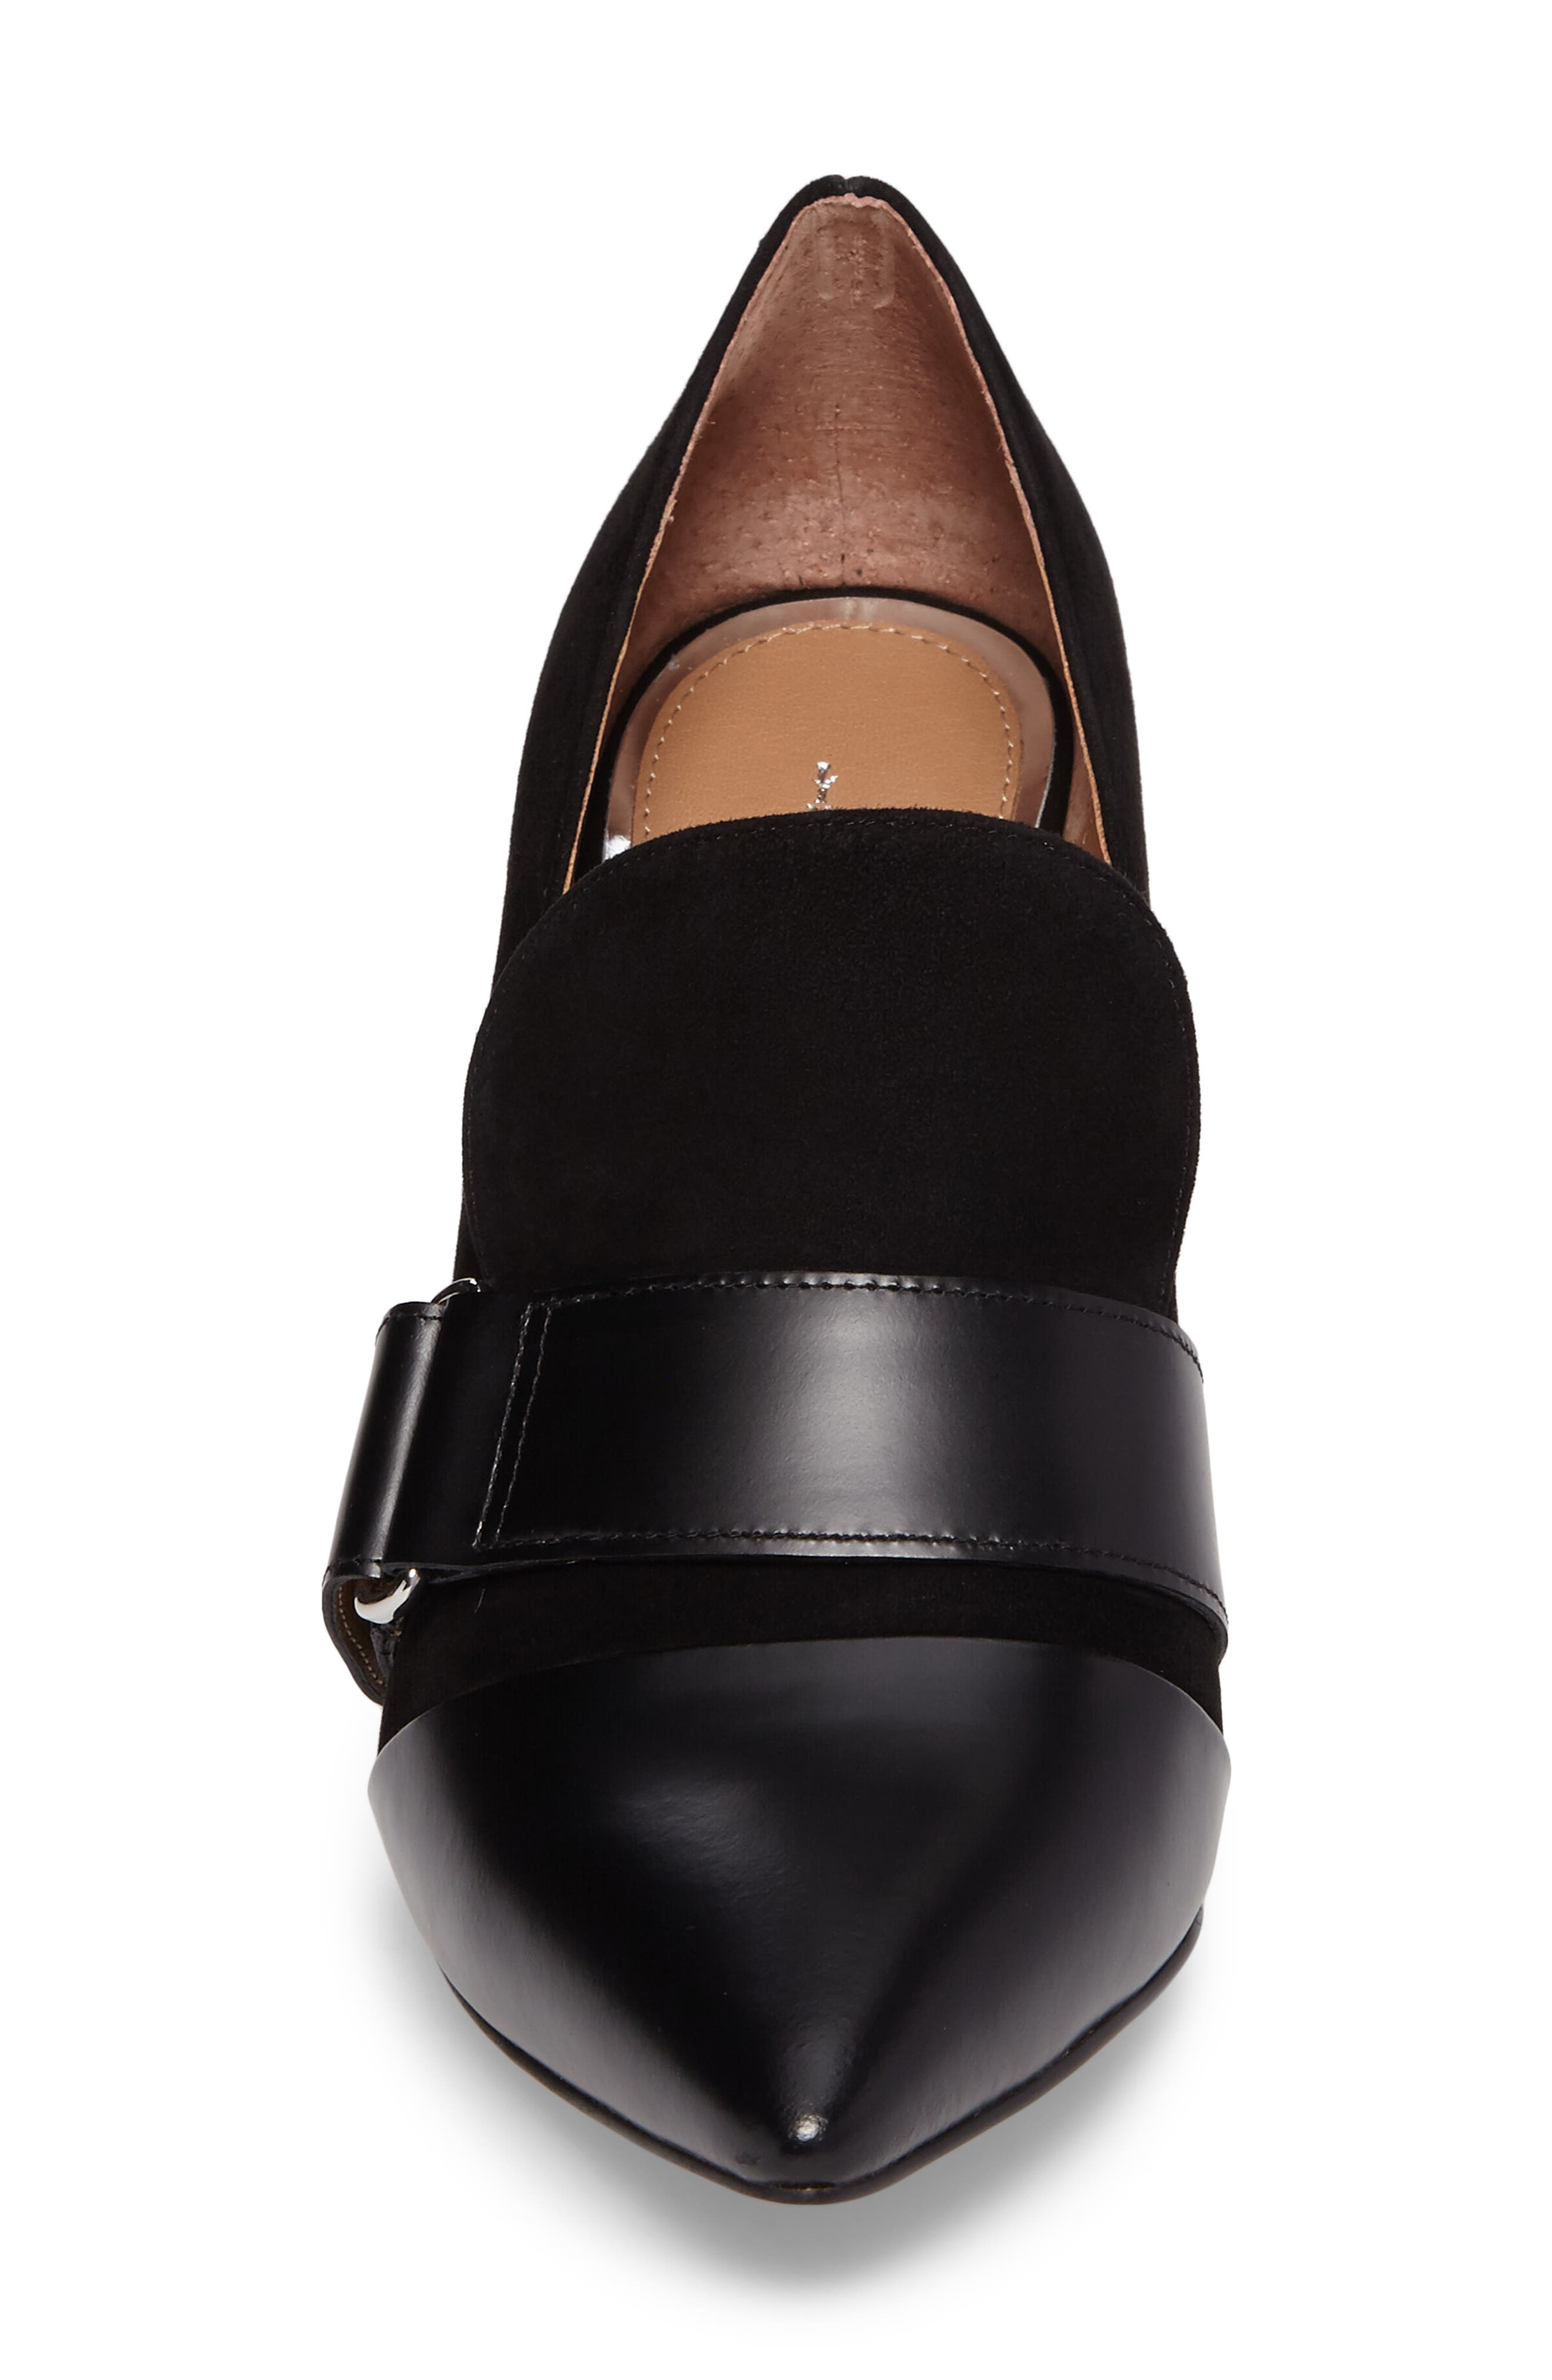 Casidy Buckle Pump,                             Alternate thumbnail 4, color,                             001